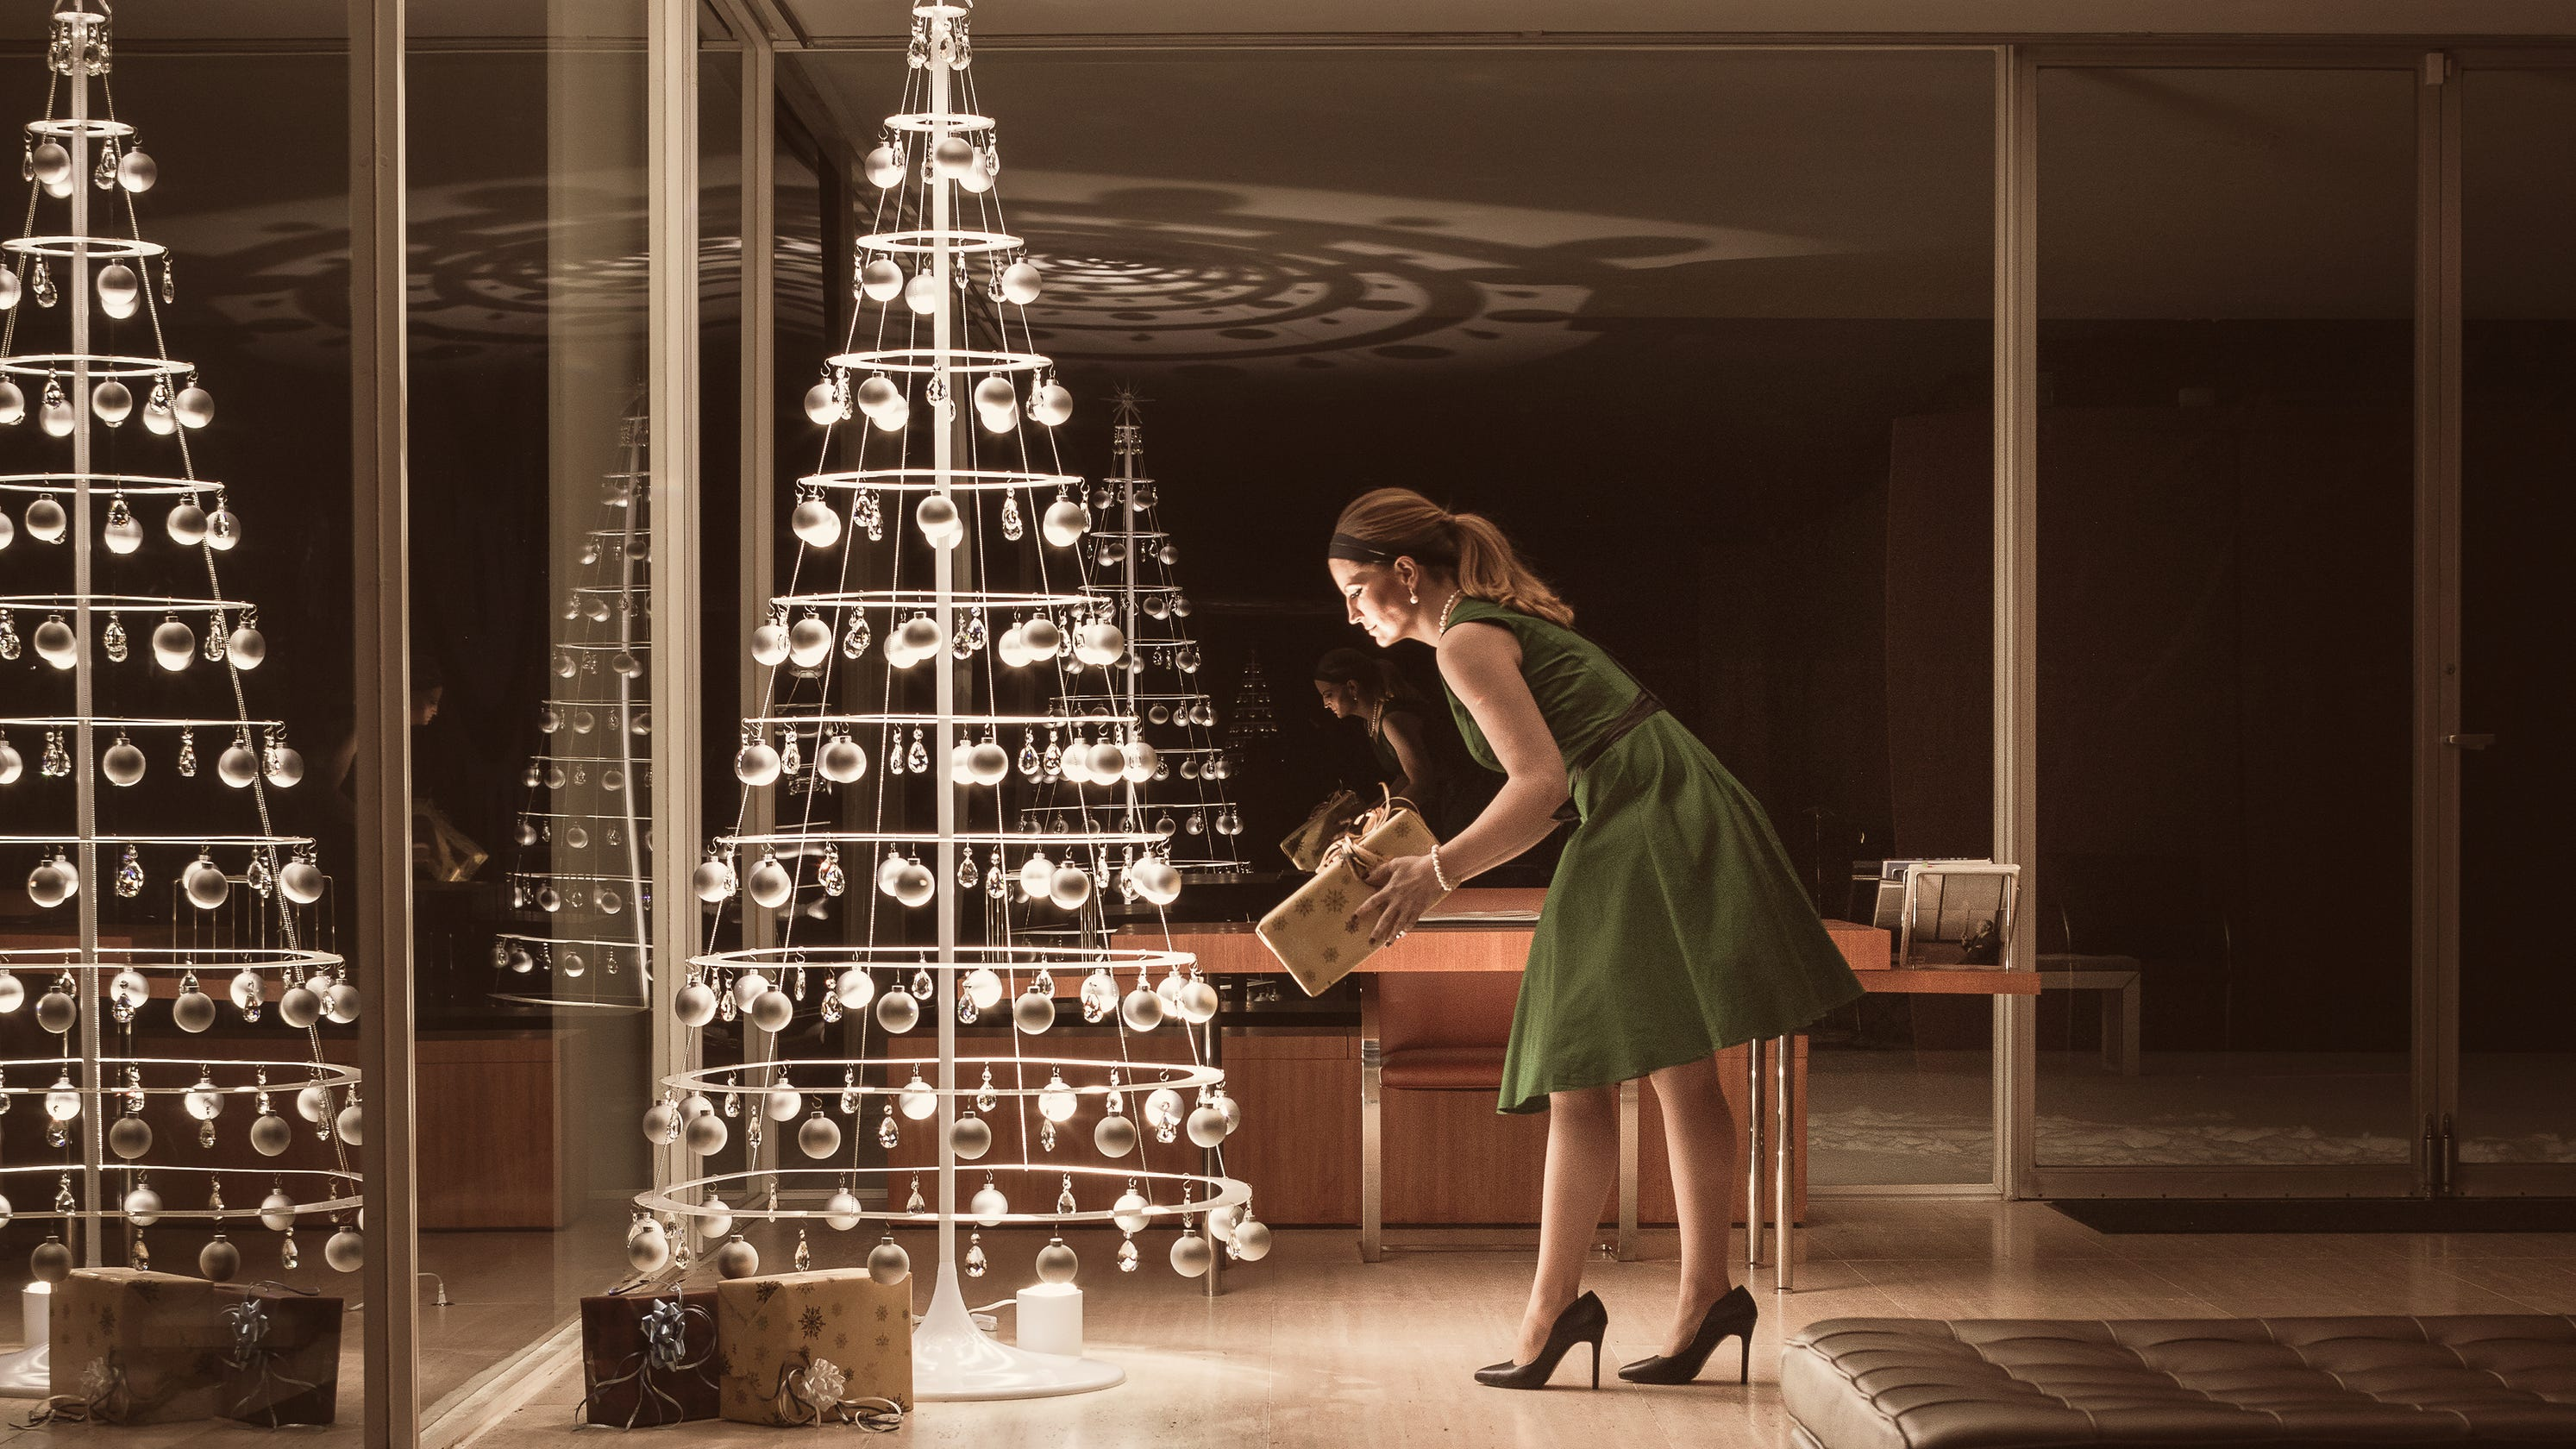 Best Christmas tree: Should you buy real or artificial?